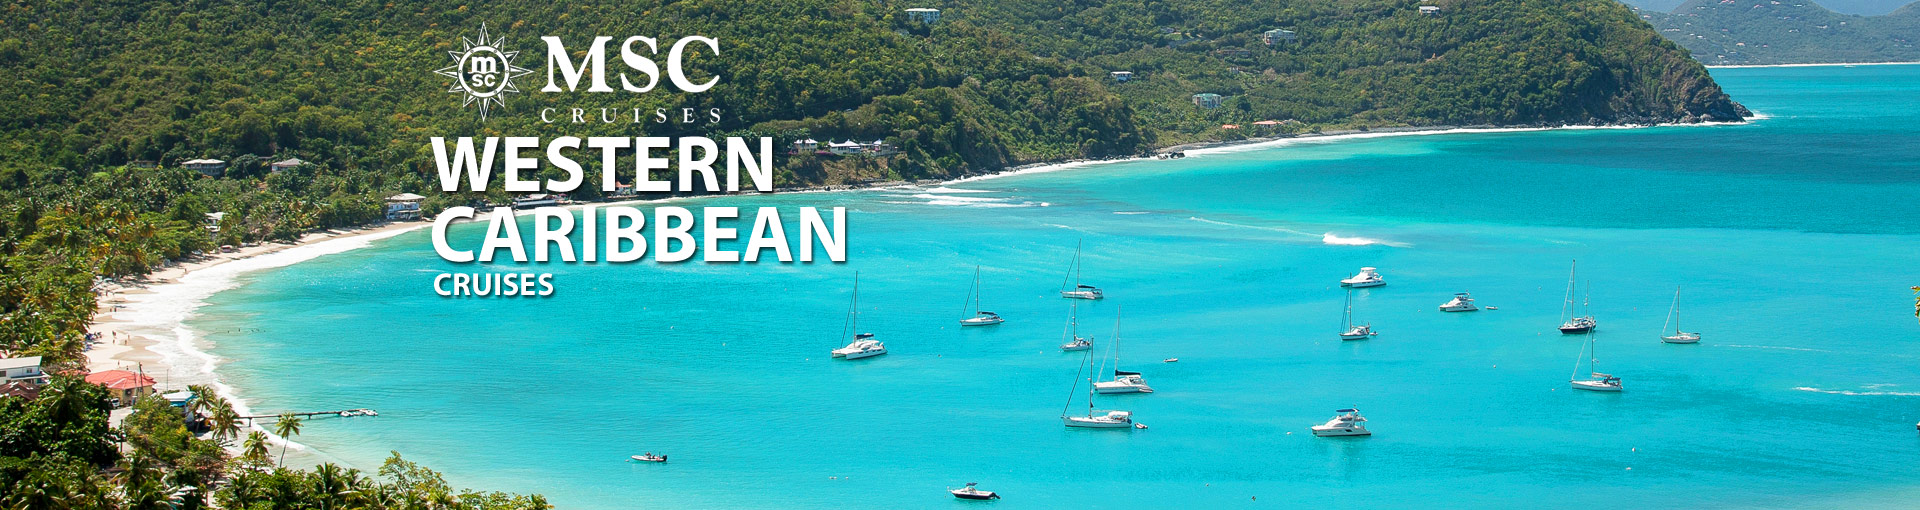 Banner for MSC Western Caribbean cruises